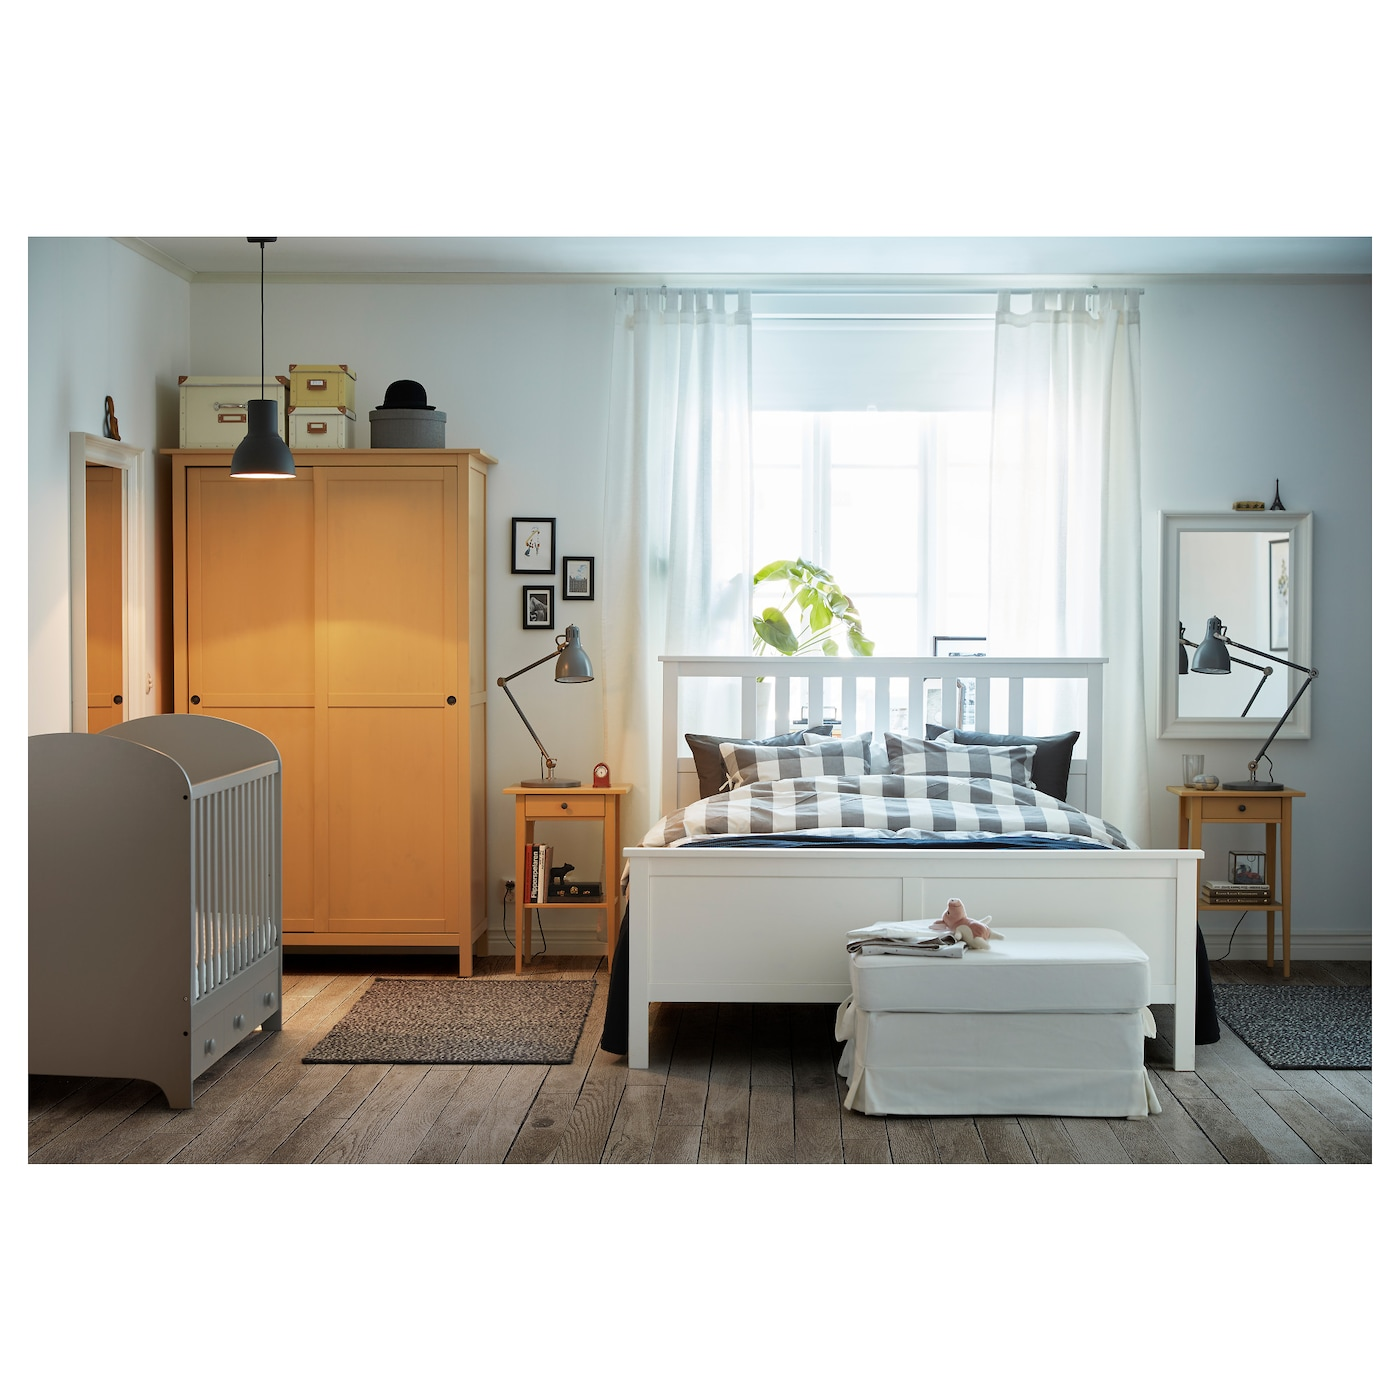 IKEA HEMNES Bed Frame Made Of Solid Wood, Which Is A Hard Wearing And